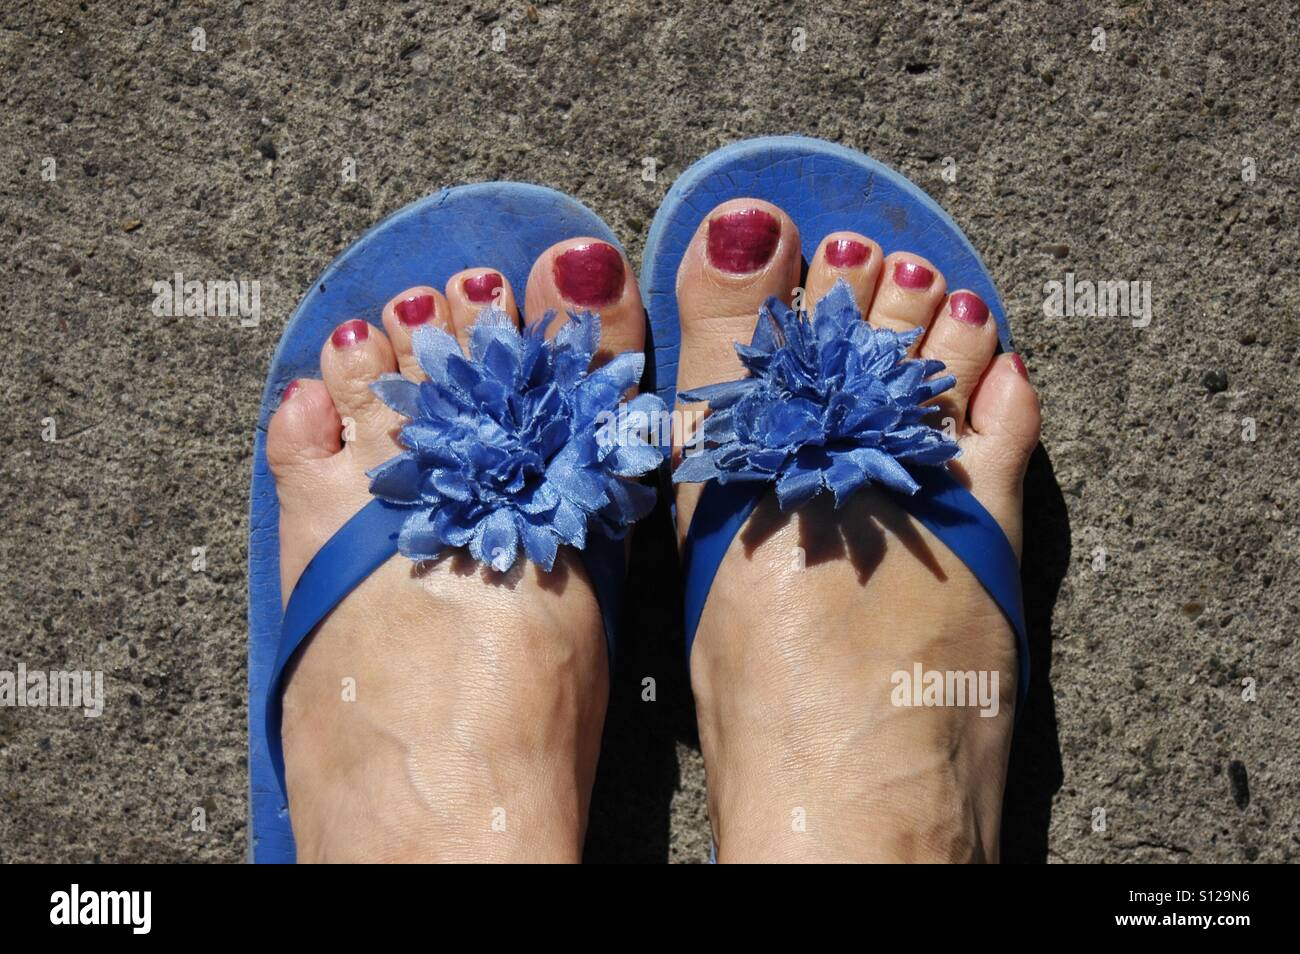 blue flipflops with flower bow and feet with red painted toenails